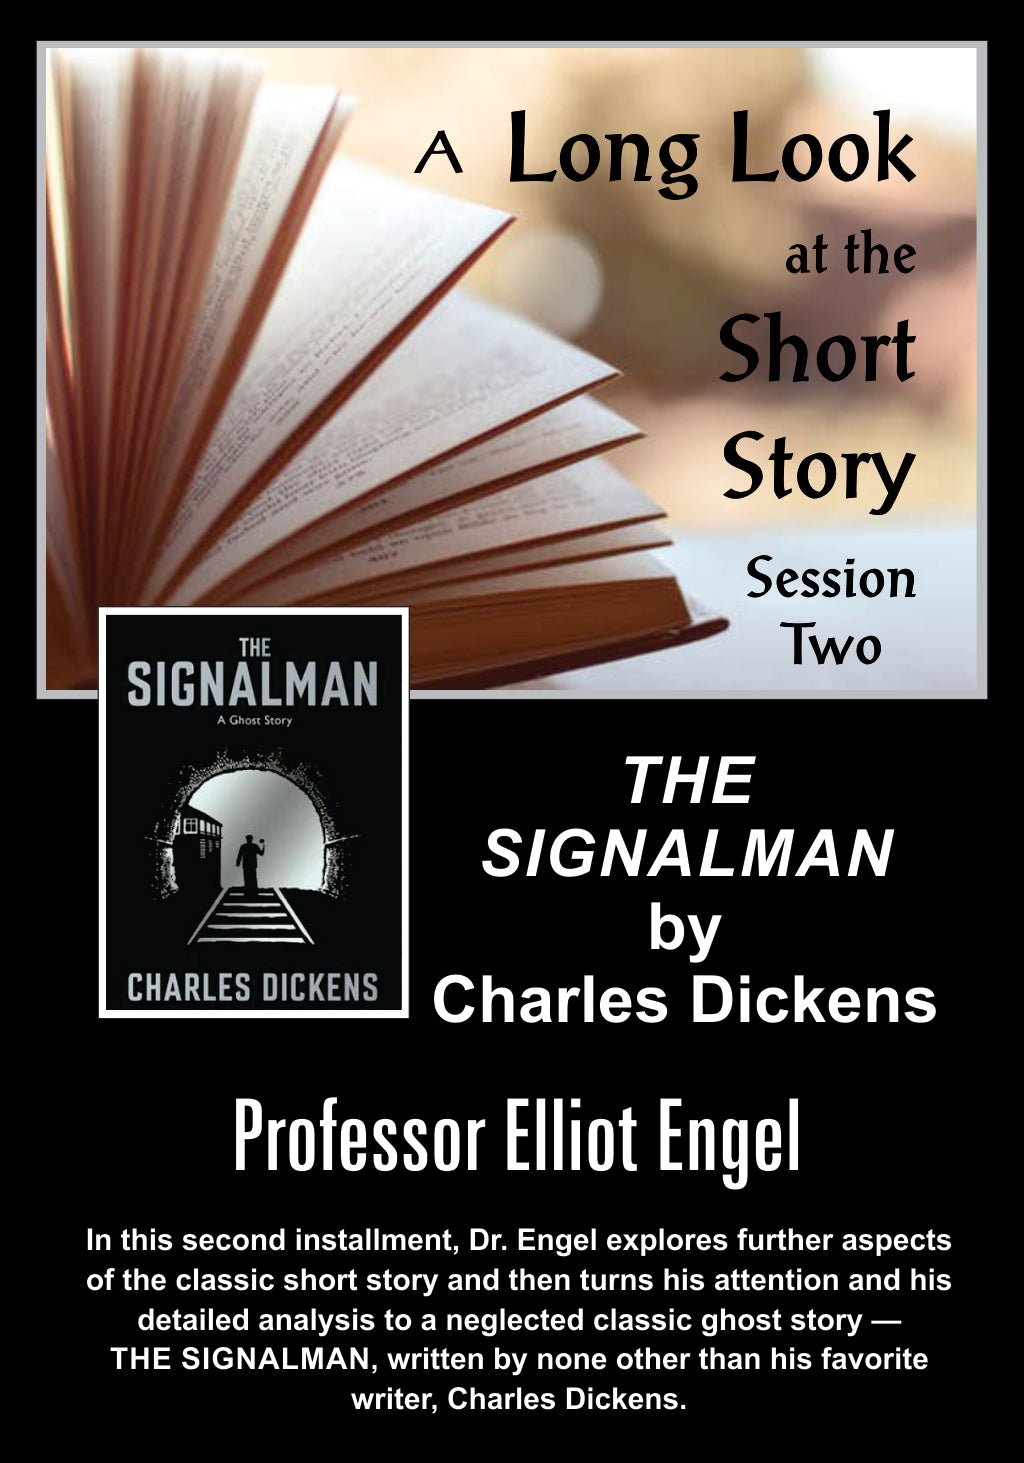 CD105 A Long Look at the Short Story 2